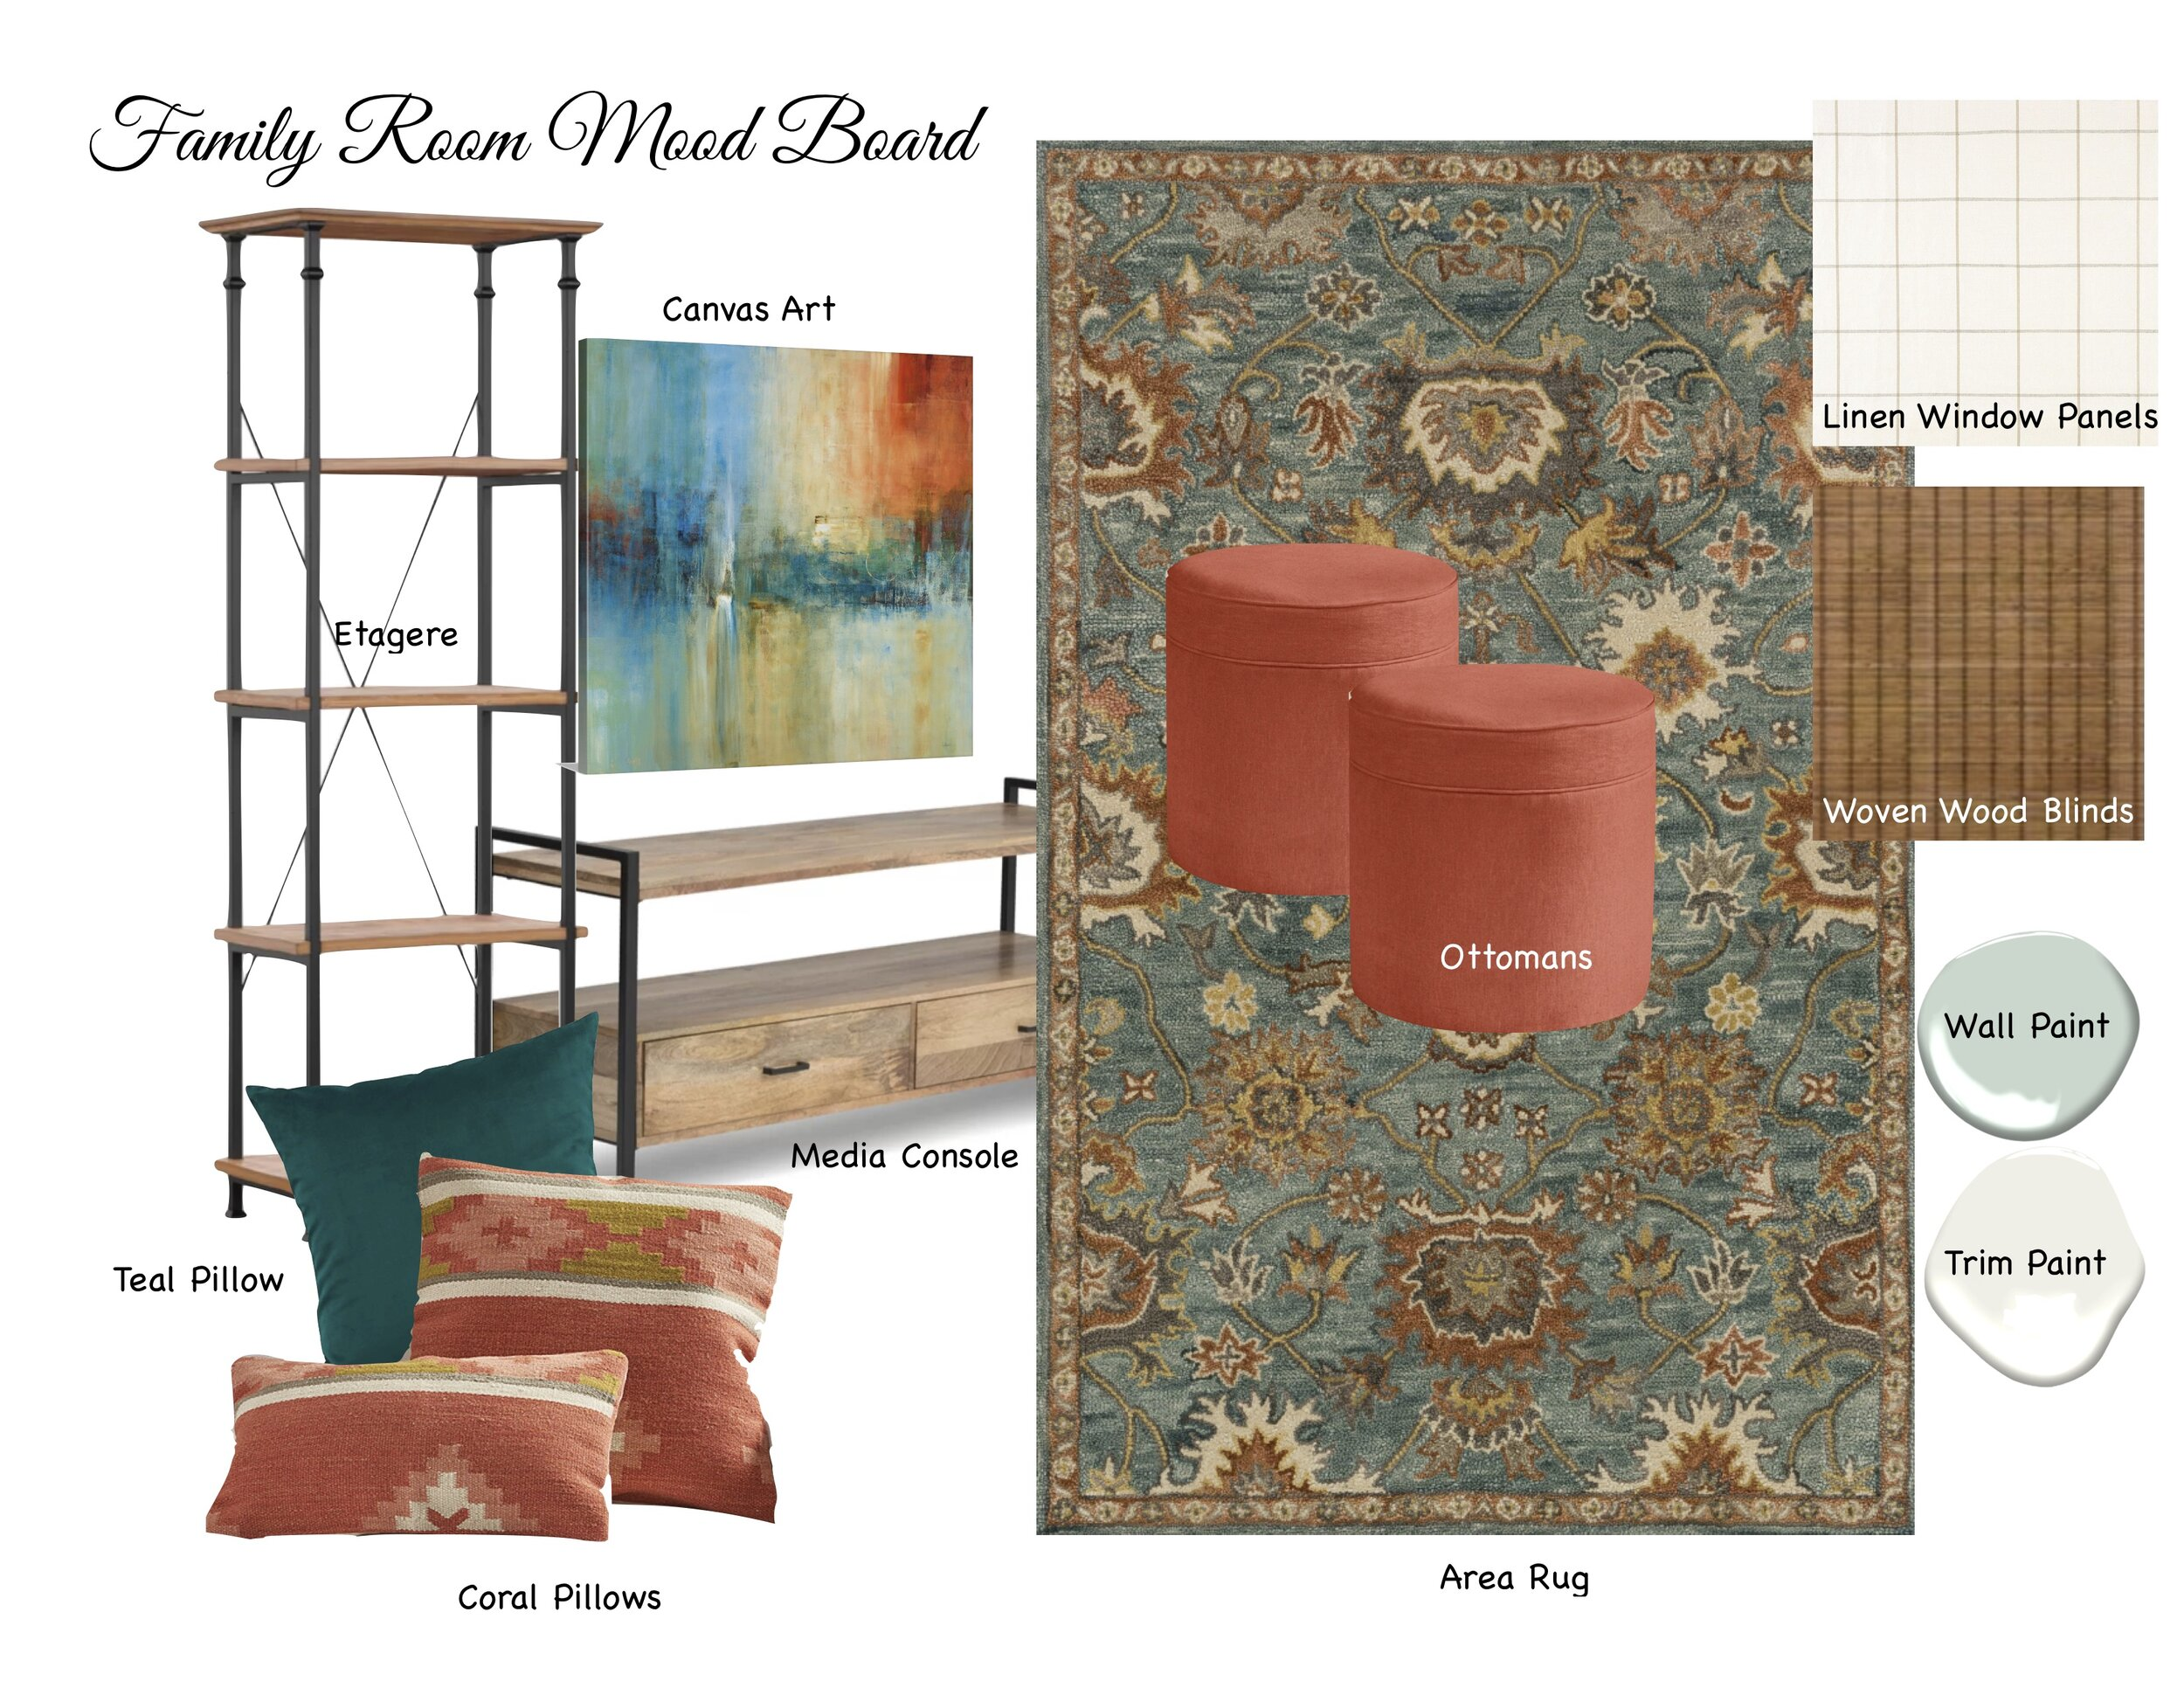 Etagere   |   Media Console   |   Teal Pillow   |   Linen Drapery Panels   |   Woven Wood Blinds